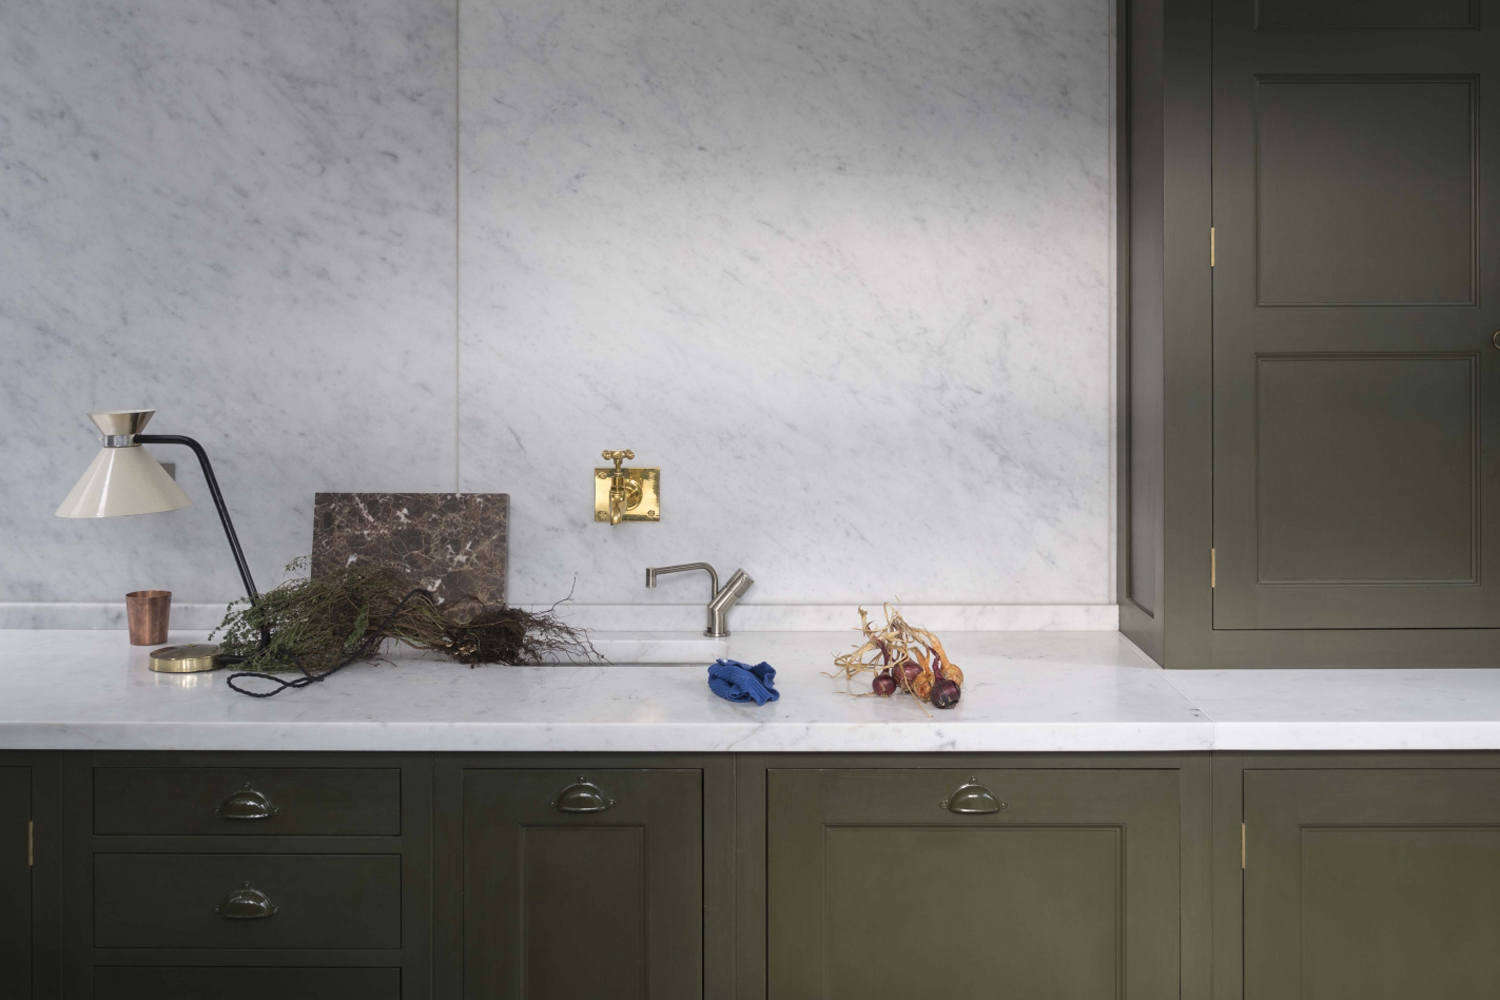 10 Easy Pieces: Undermount Bar Sinks